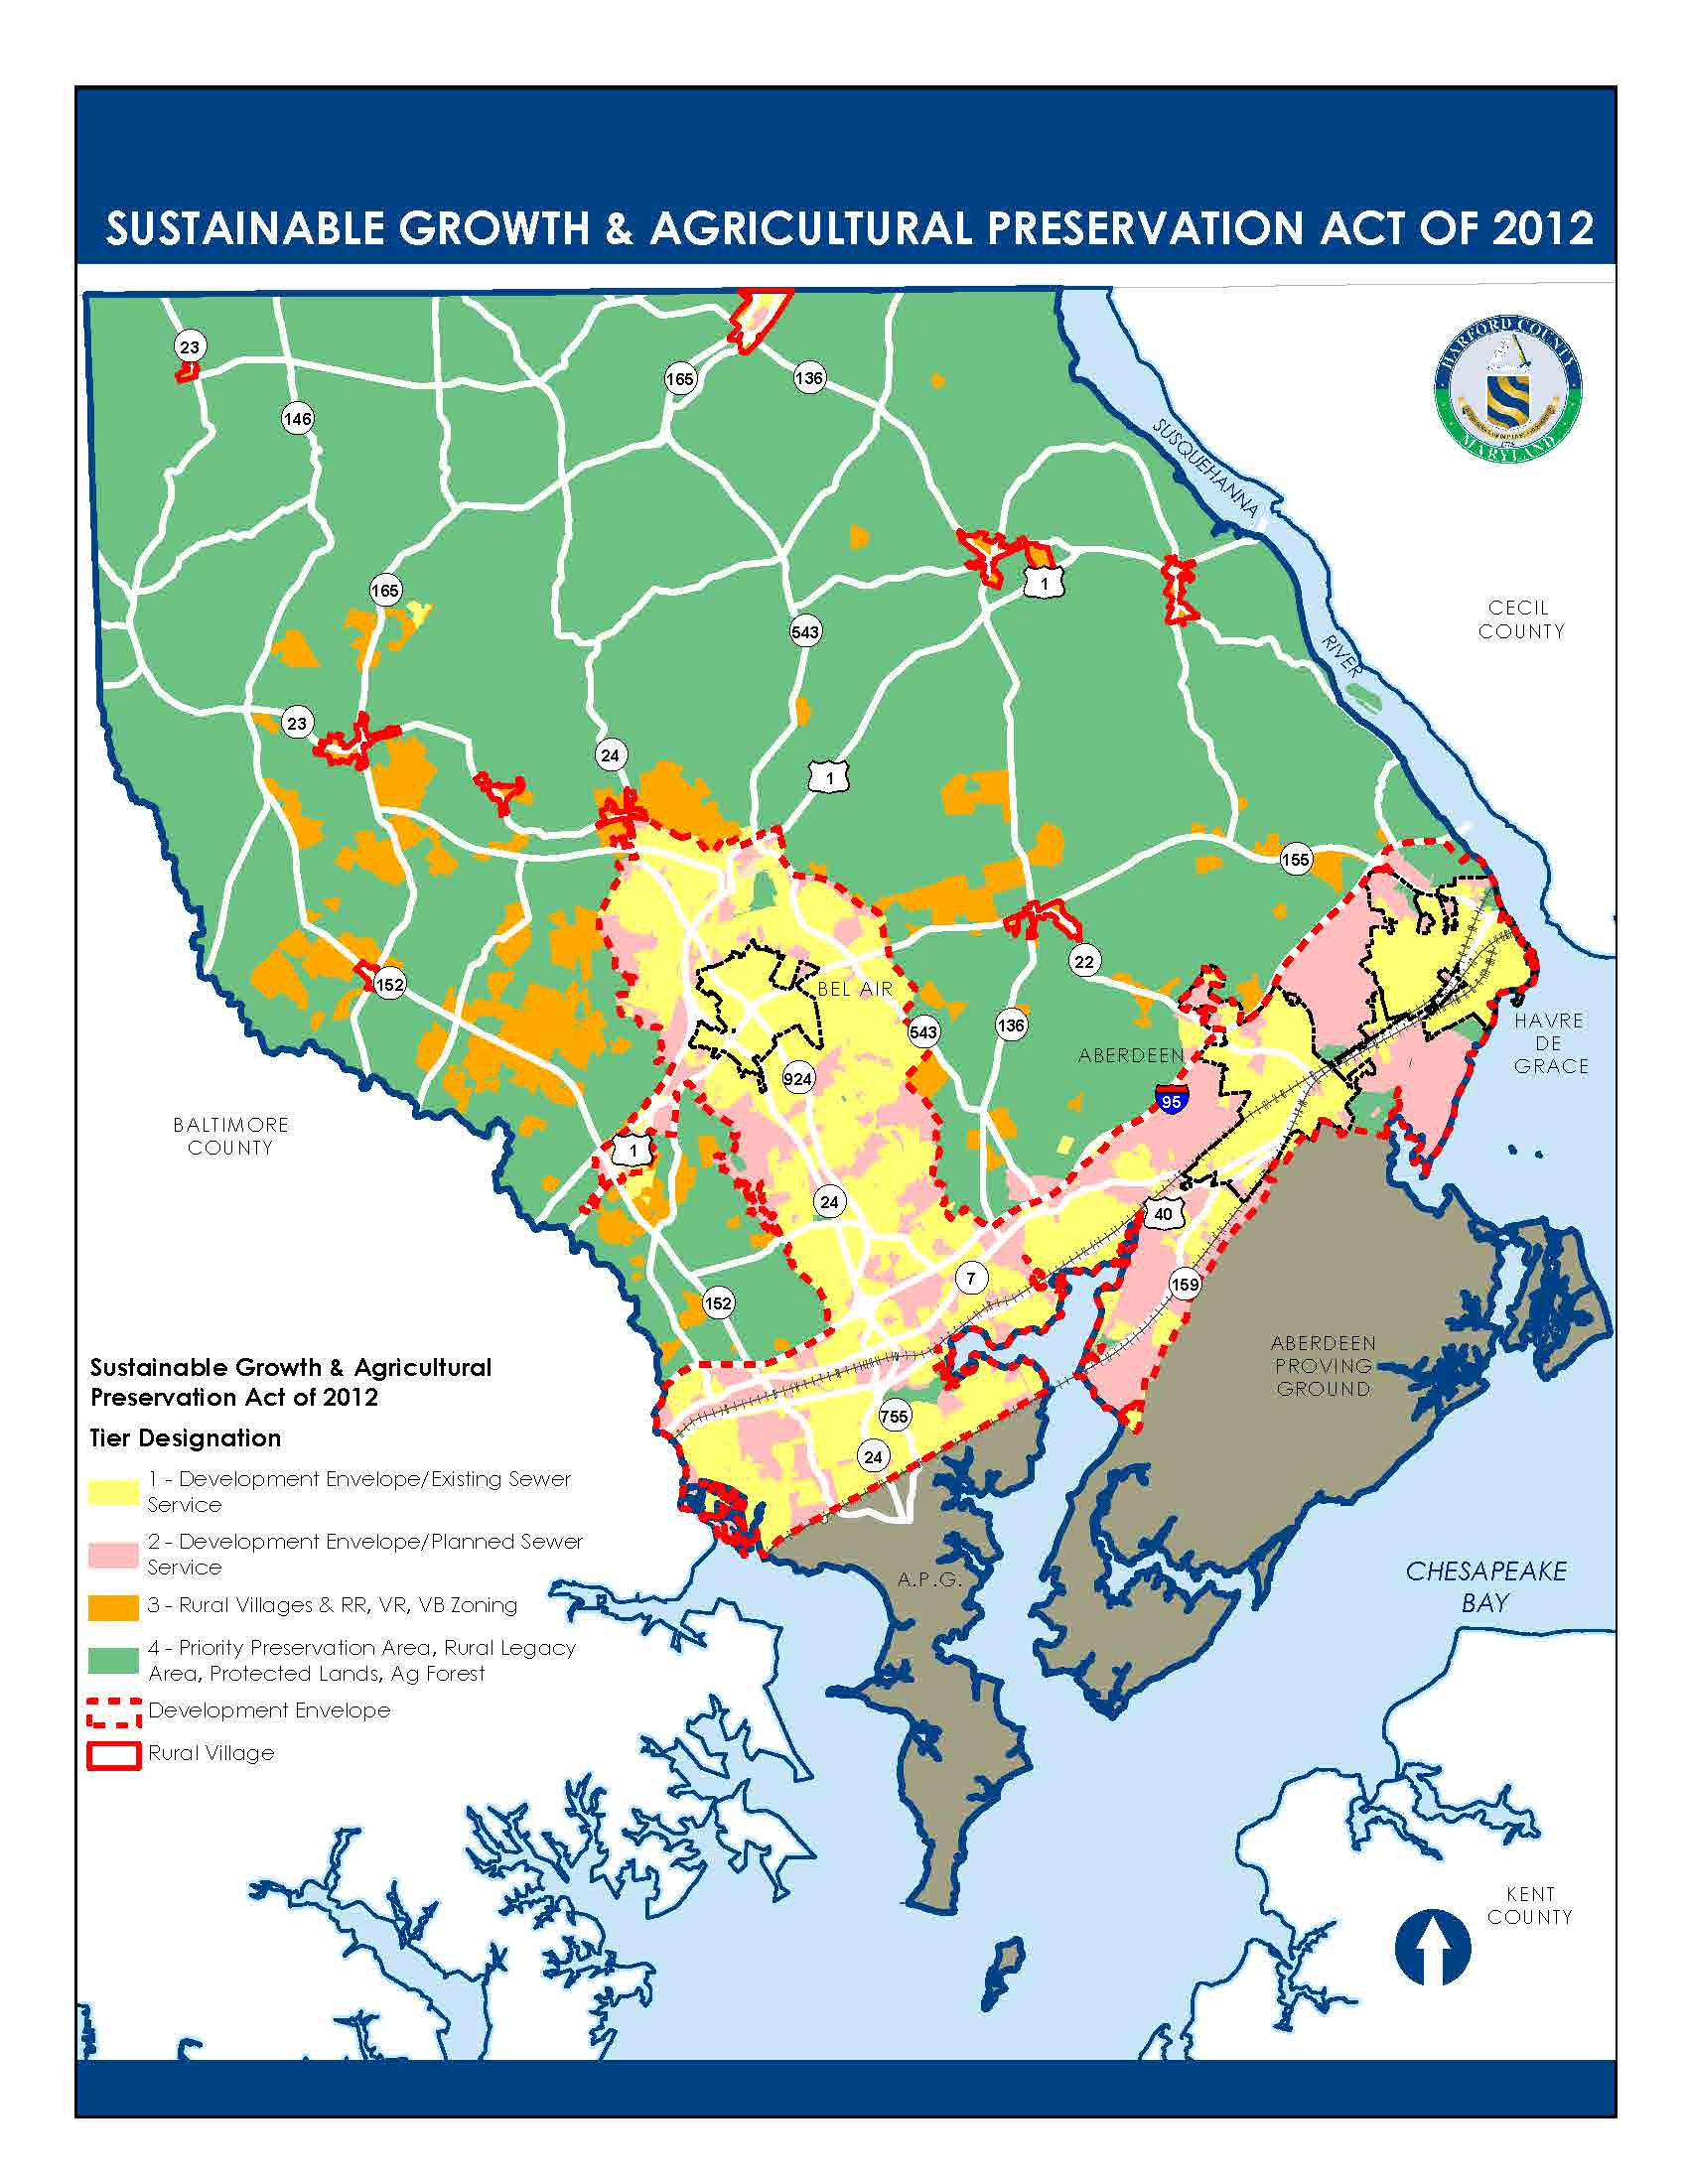 Tier designations to guide development and further protect the Chesapeake Bay.